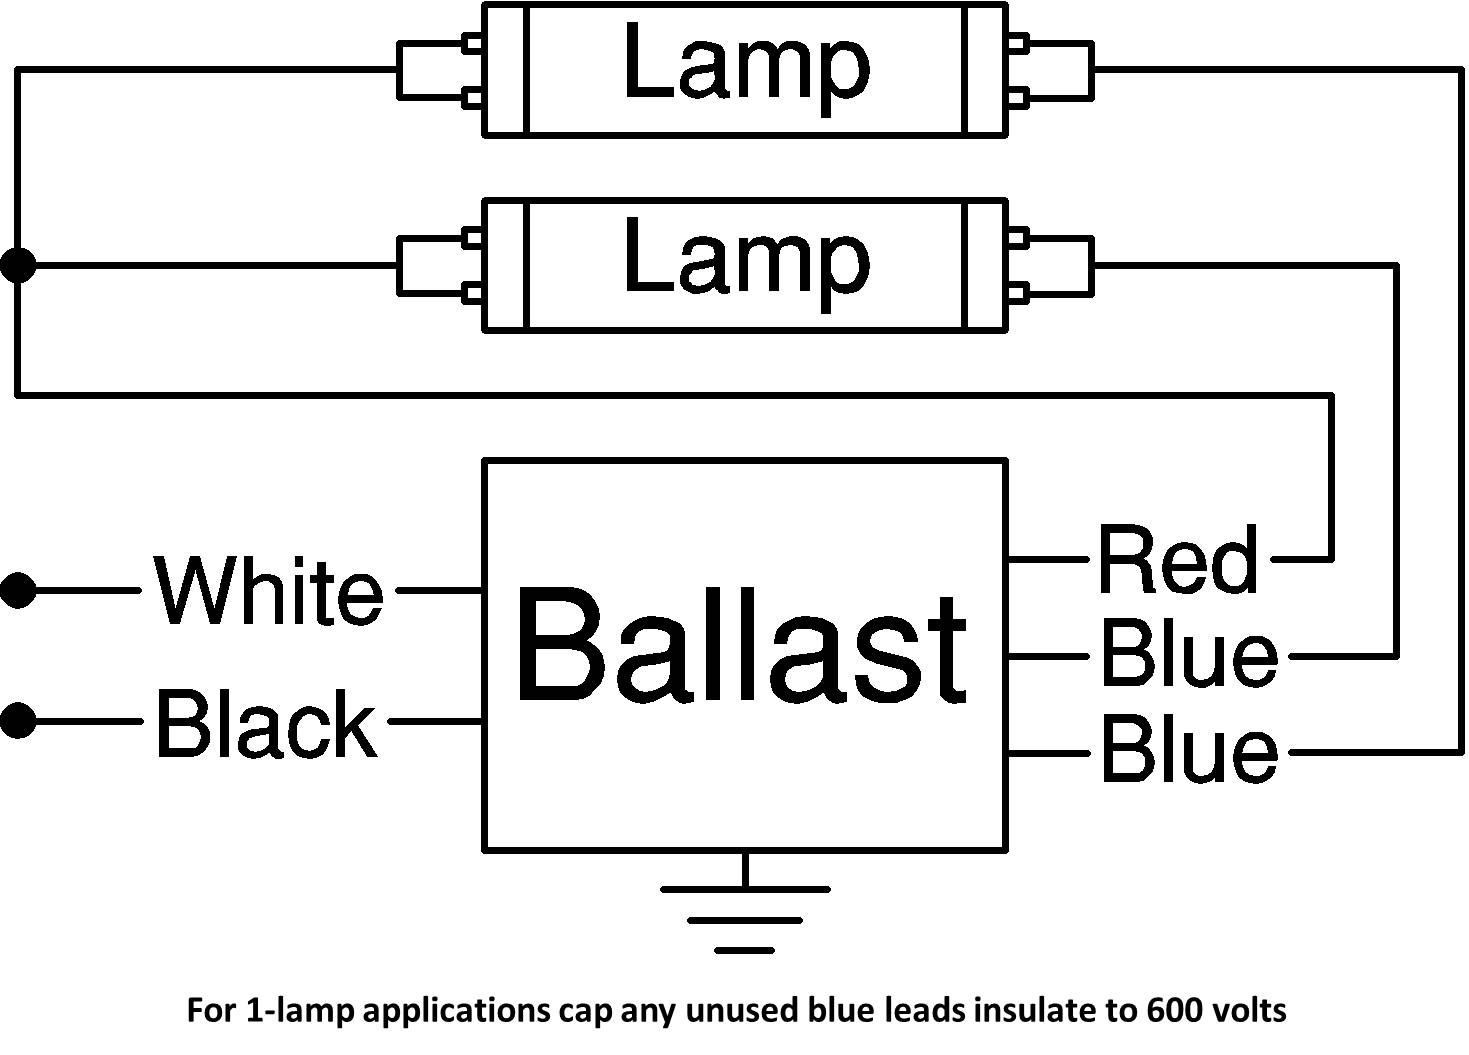 Philips Advance Ballast Wiring Diagram On Philips Advance Ballast